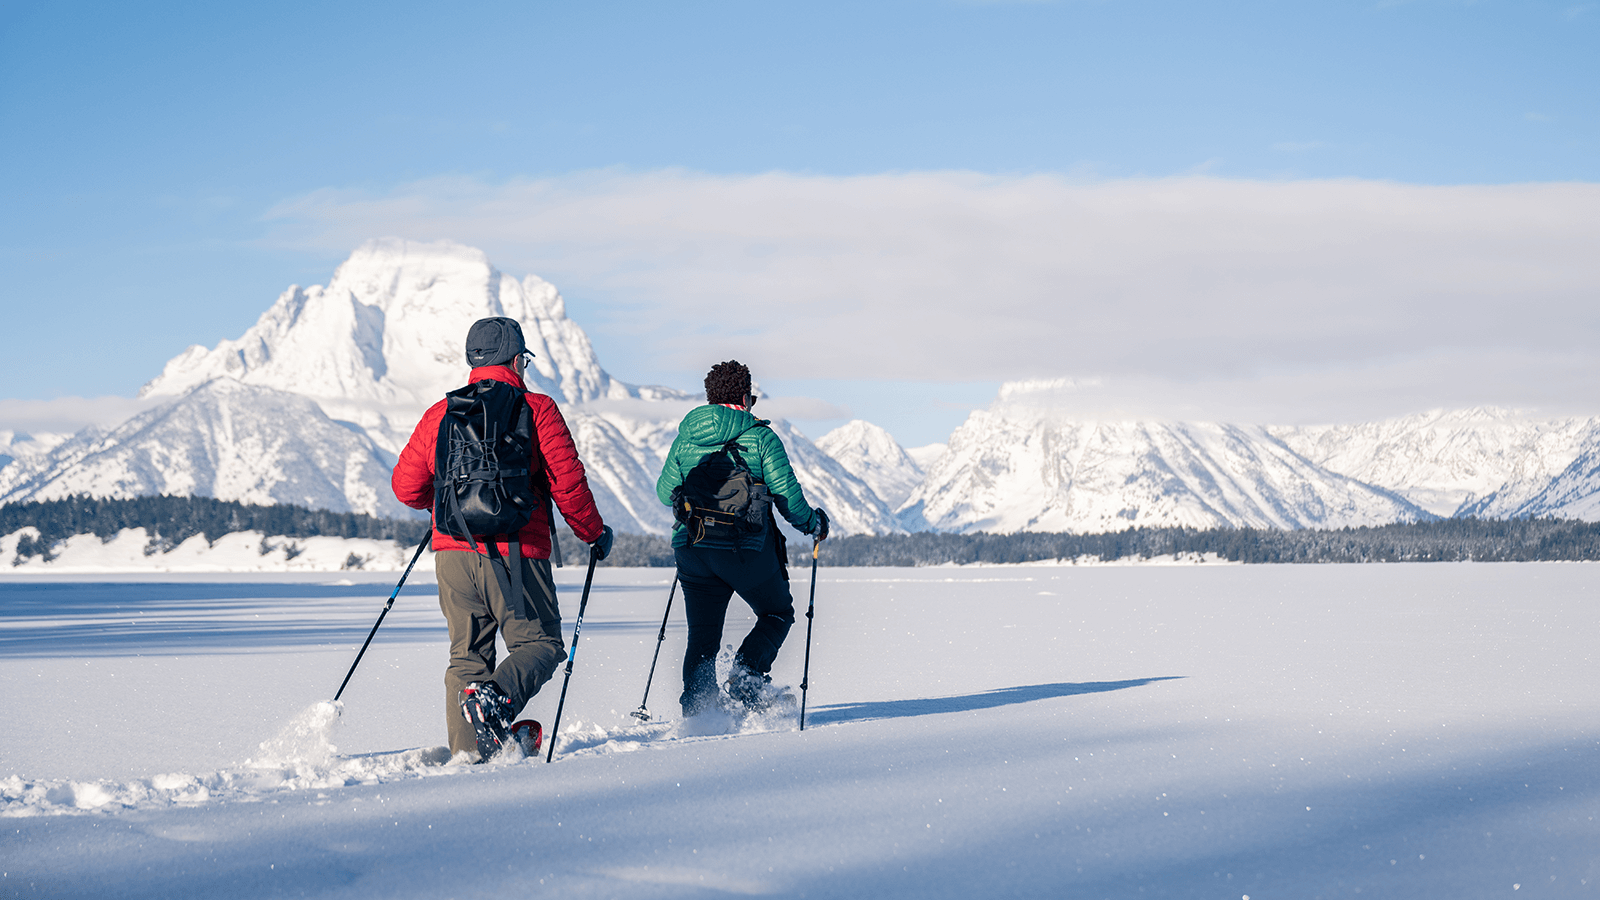 Couple snowshoeing through the snow, mountains in the background.